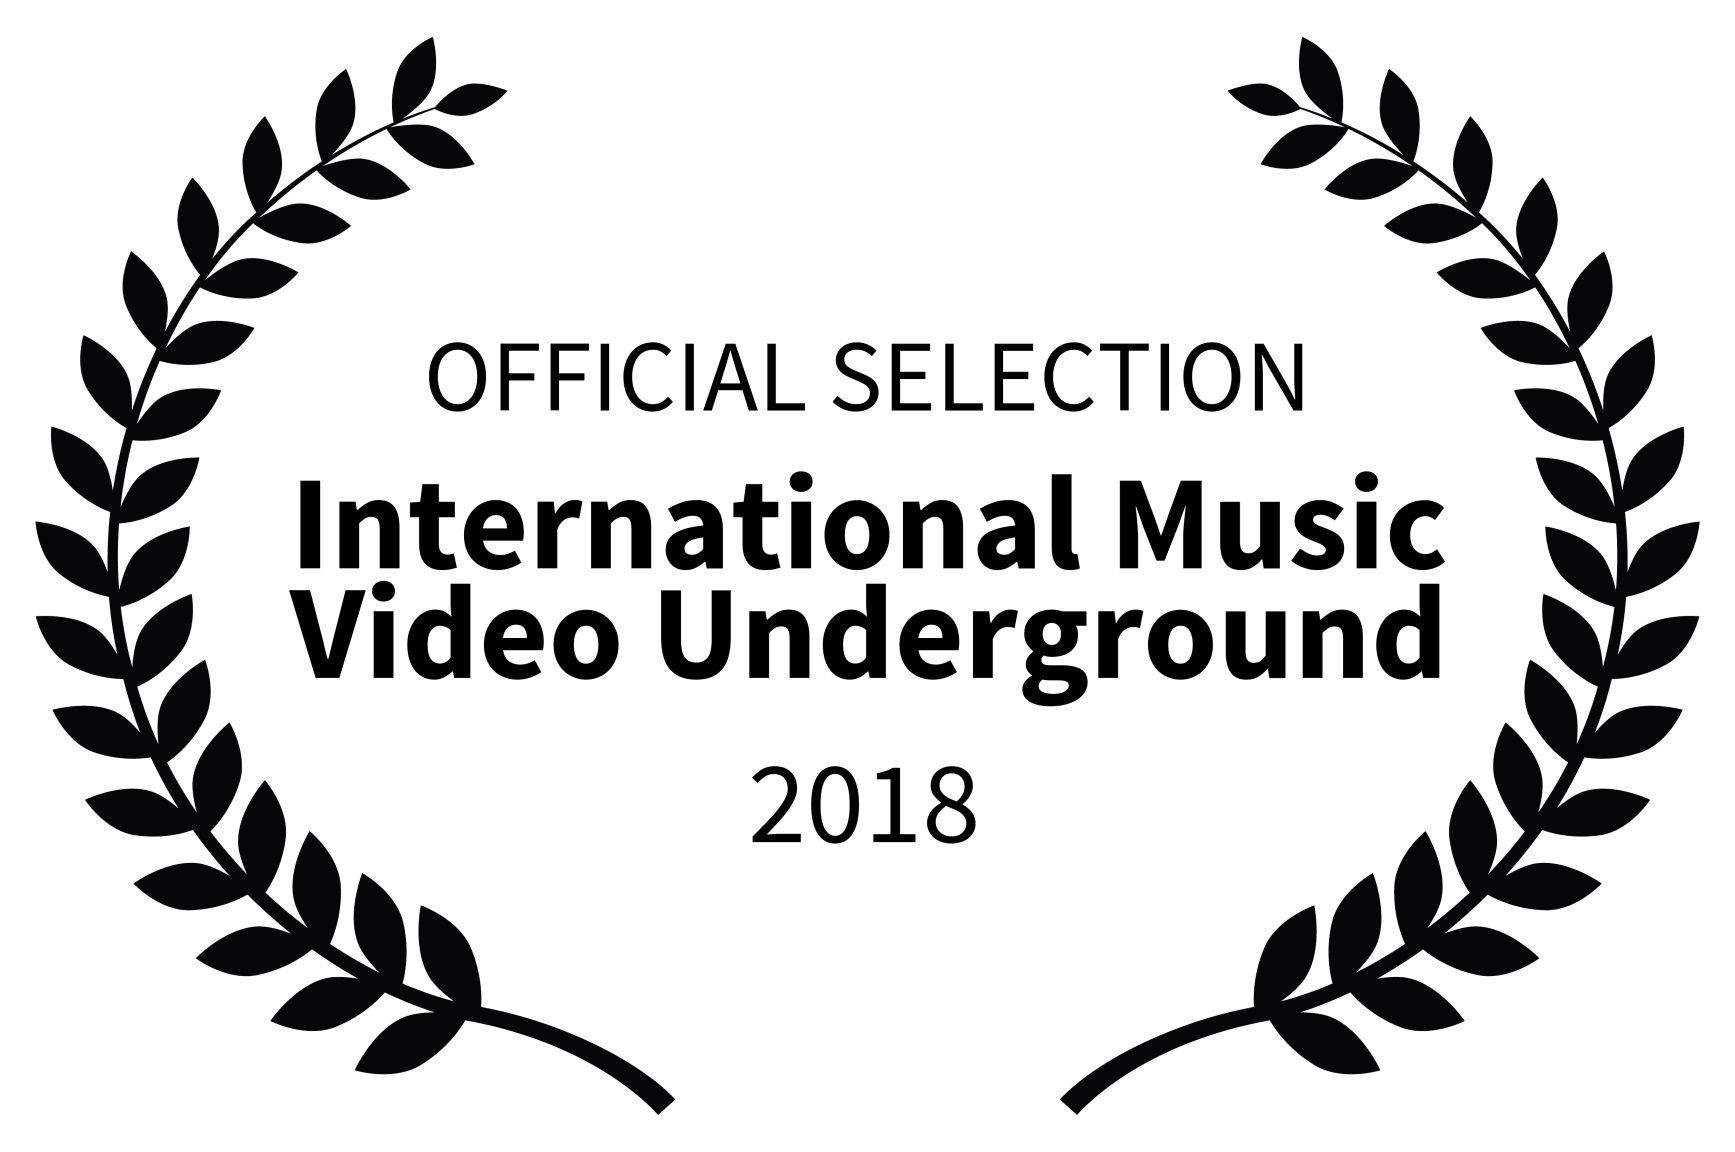 OFFICIAL_SELECTION_-_International_Music_Video_Underground_-_2018